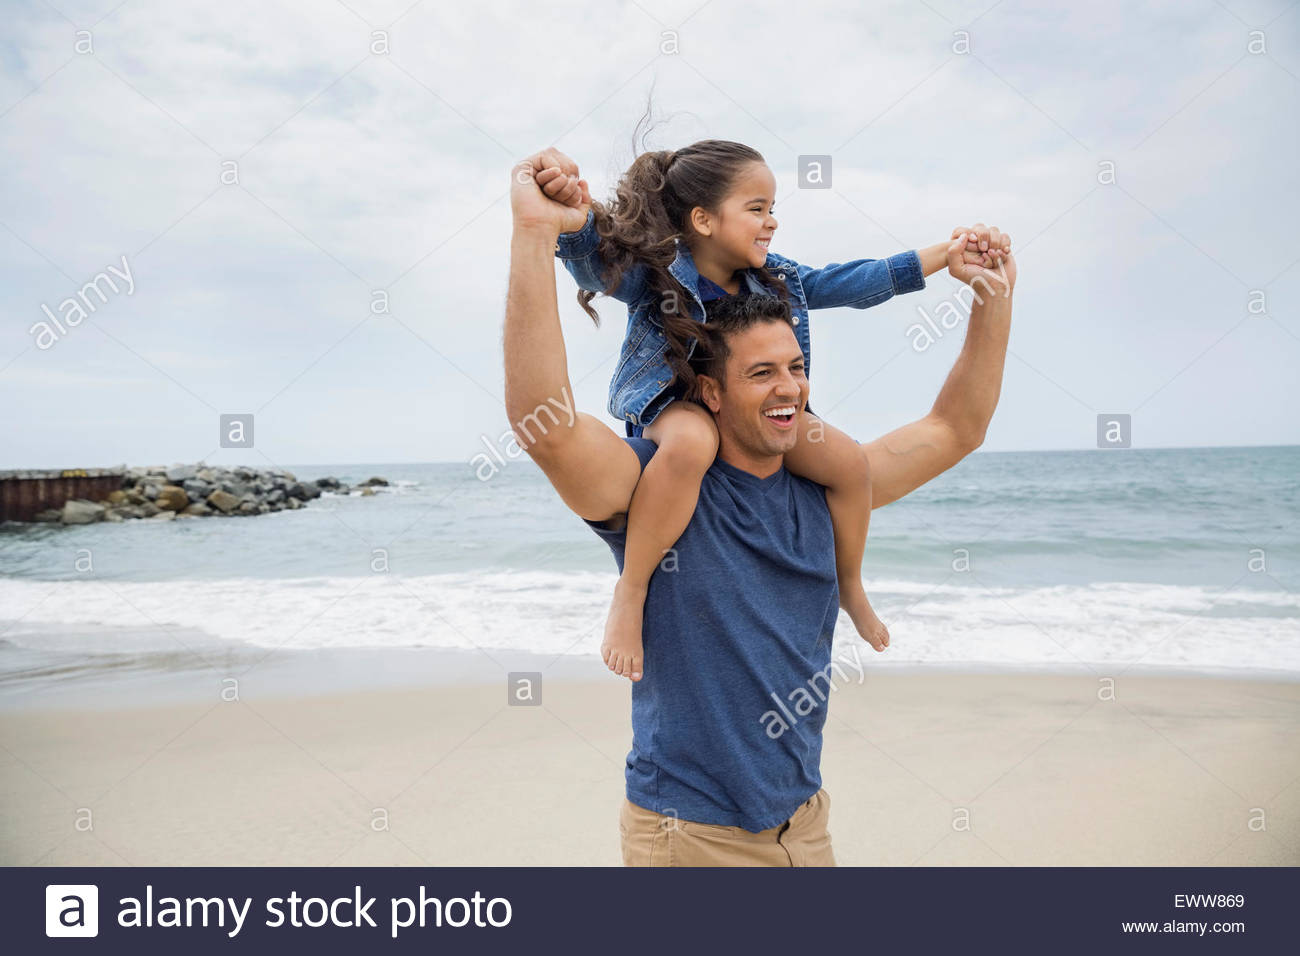 Playful father carrying daughter on shoulders at beach - Stock Image